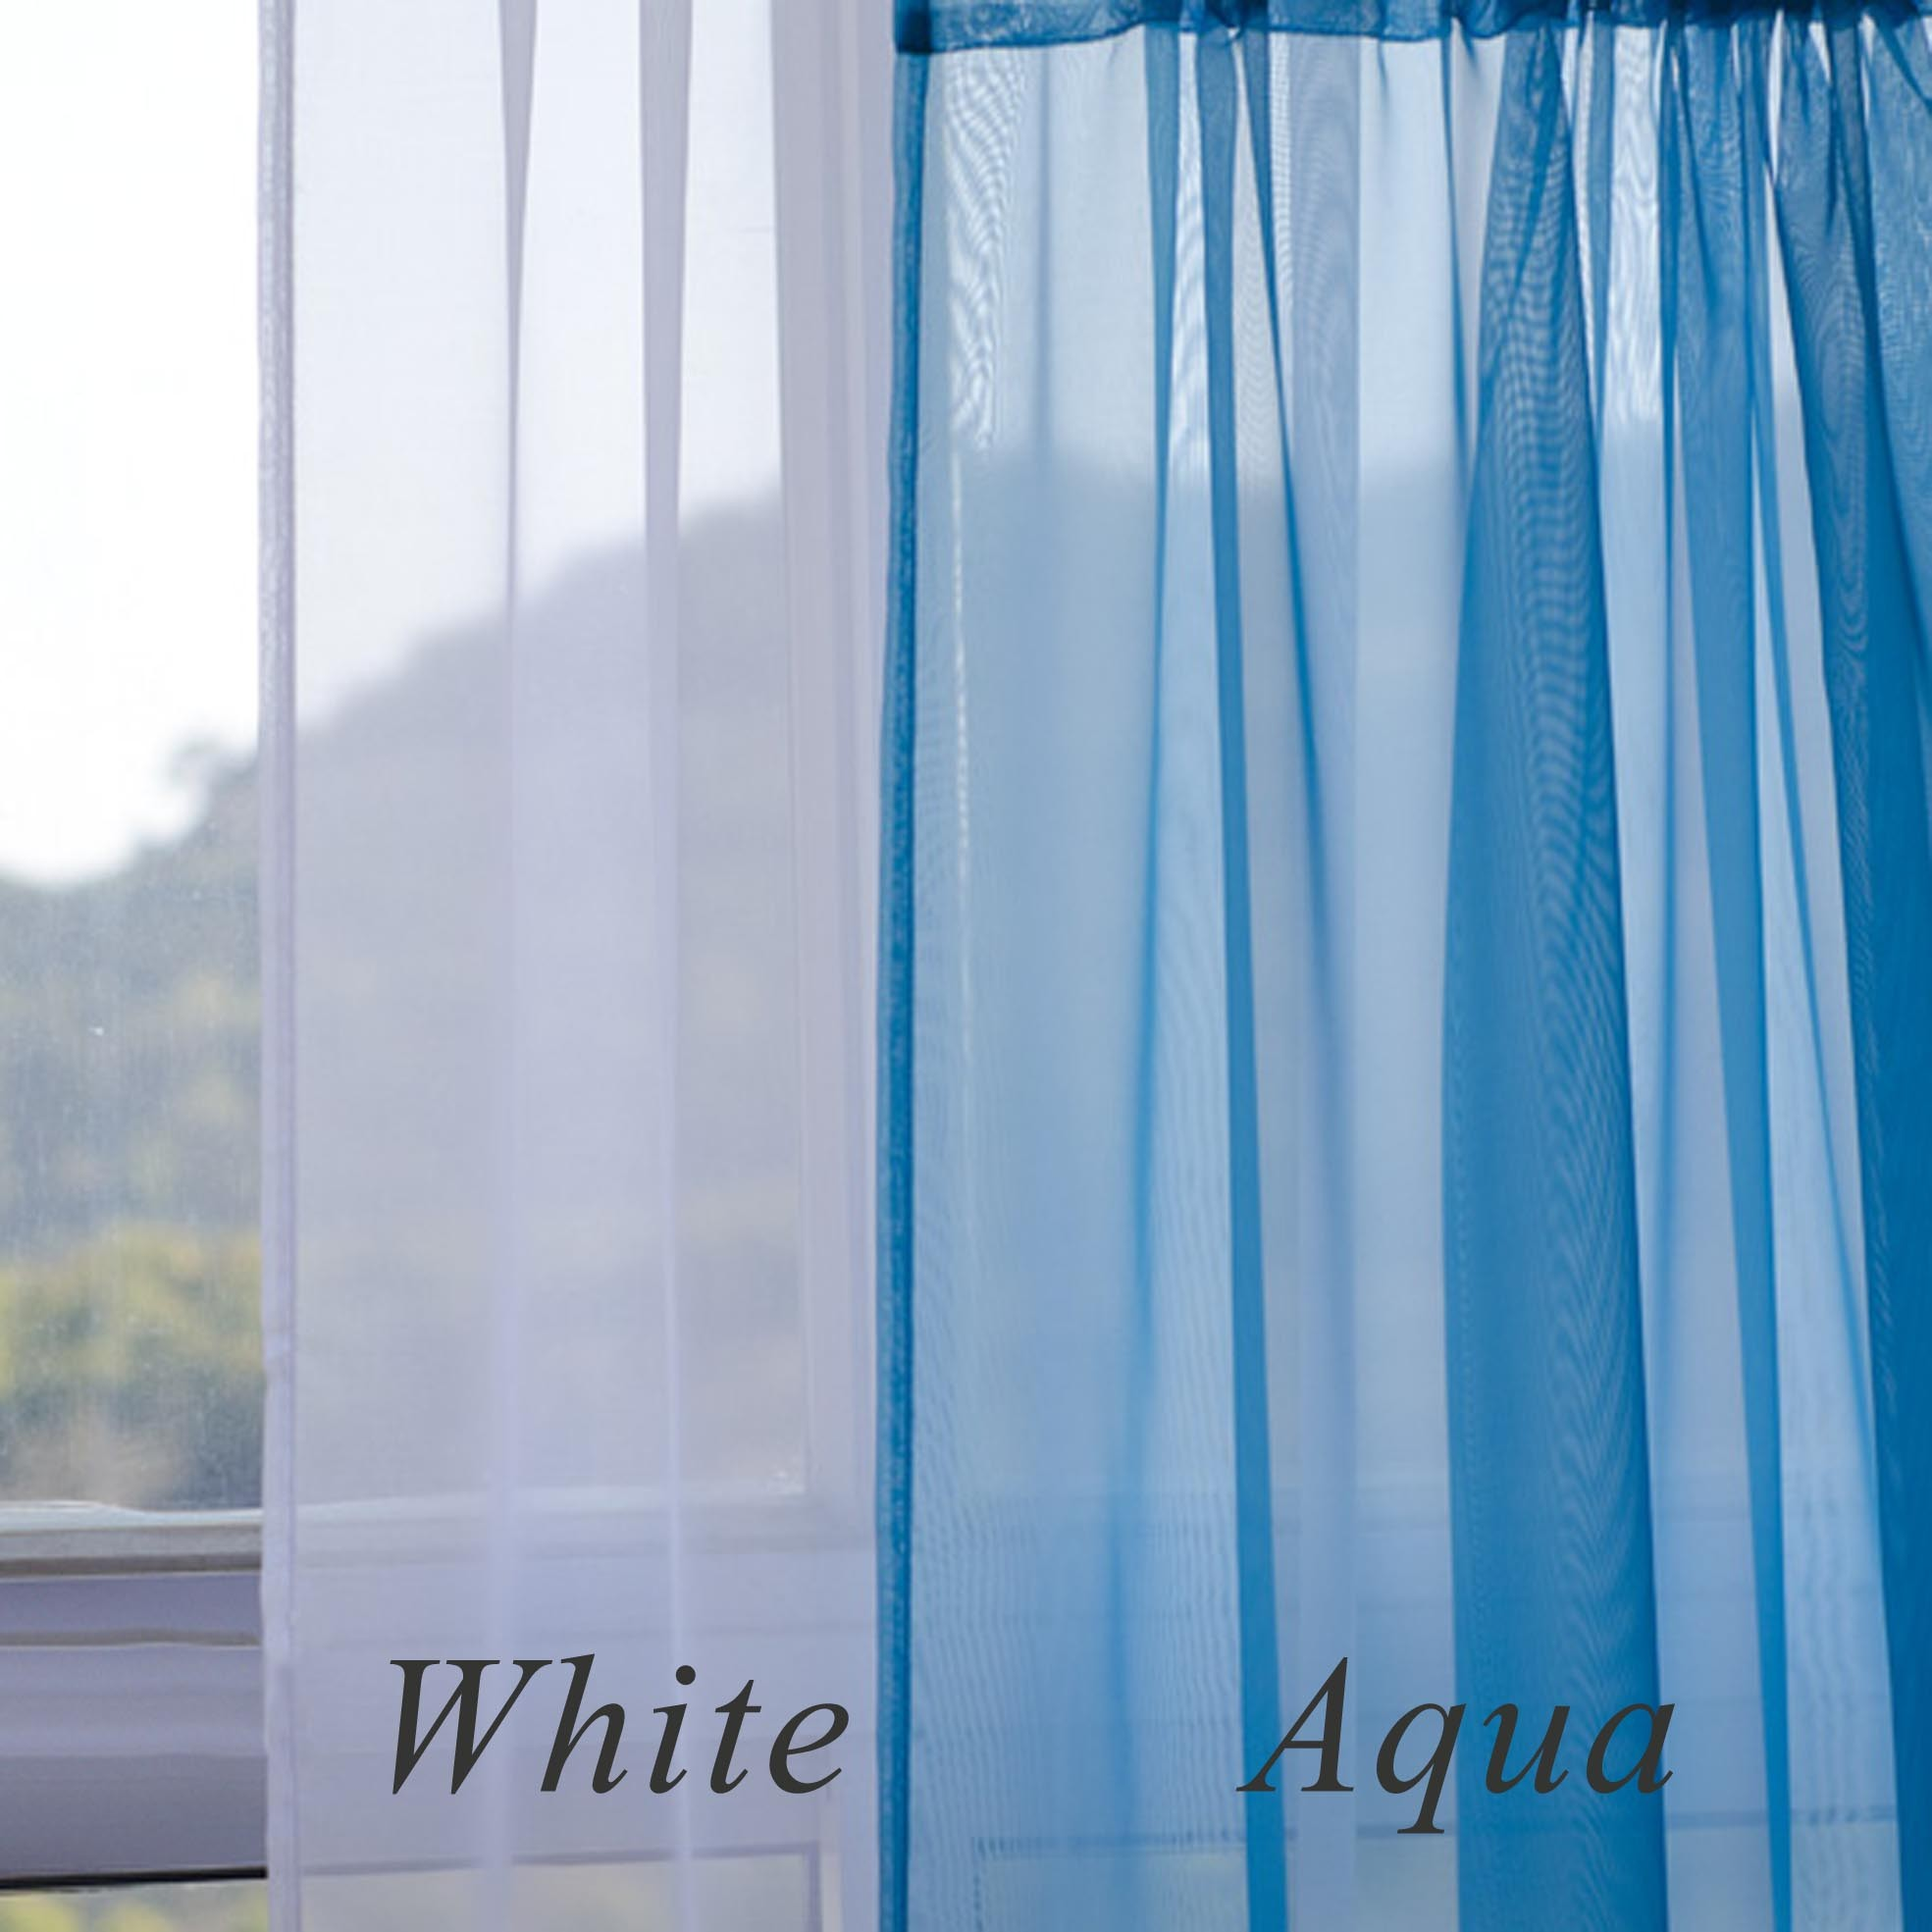 pair more aqua bedding clothing curtains shopping vcny pin blue curtain window jewelry home overstock inches com electronics online furniture panel sheer gabrielle sheerssheer